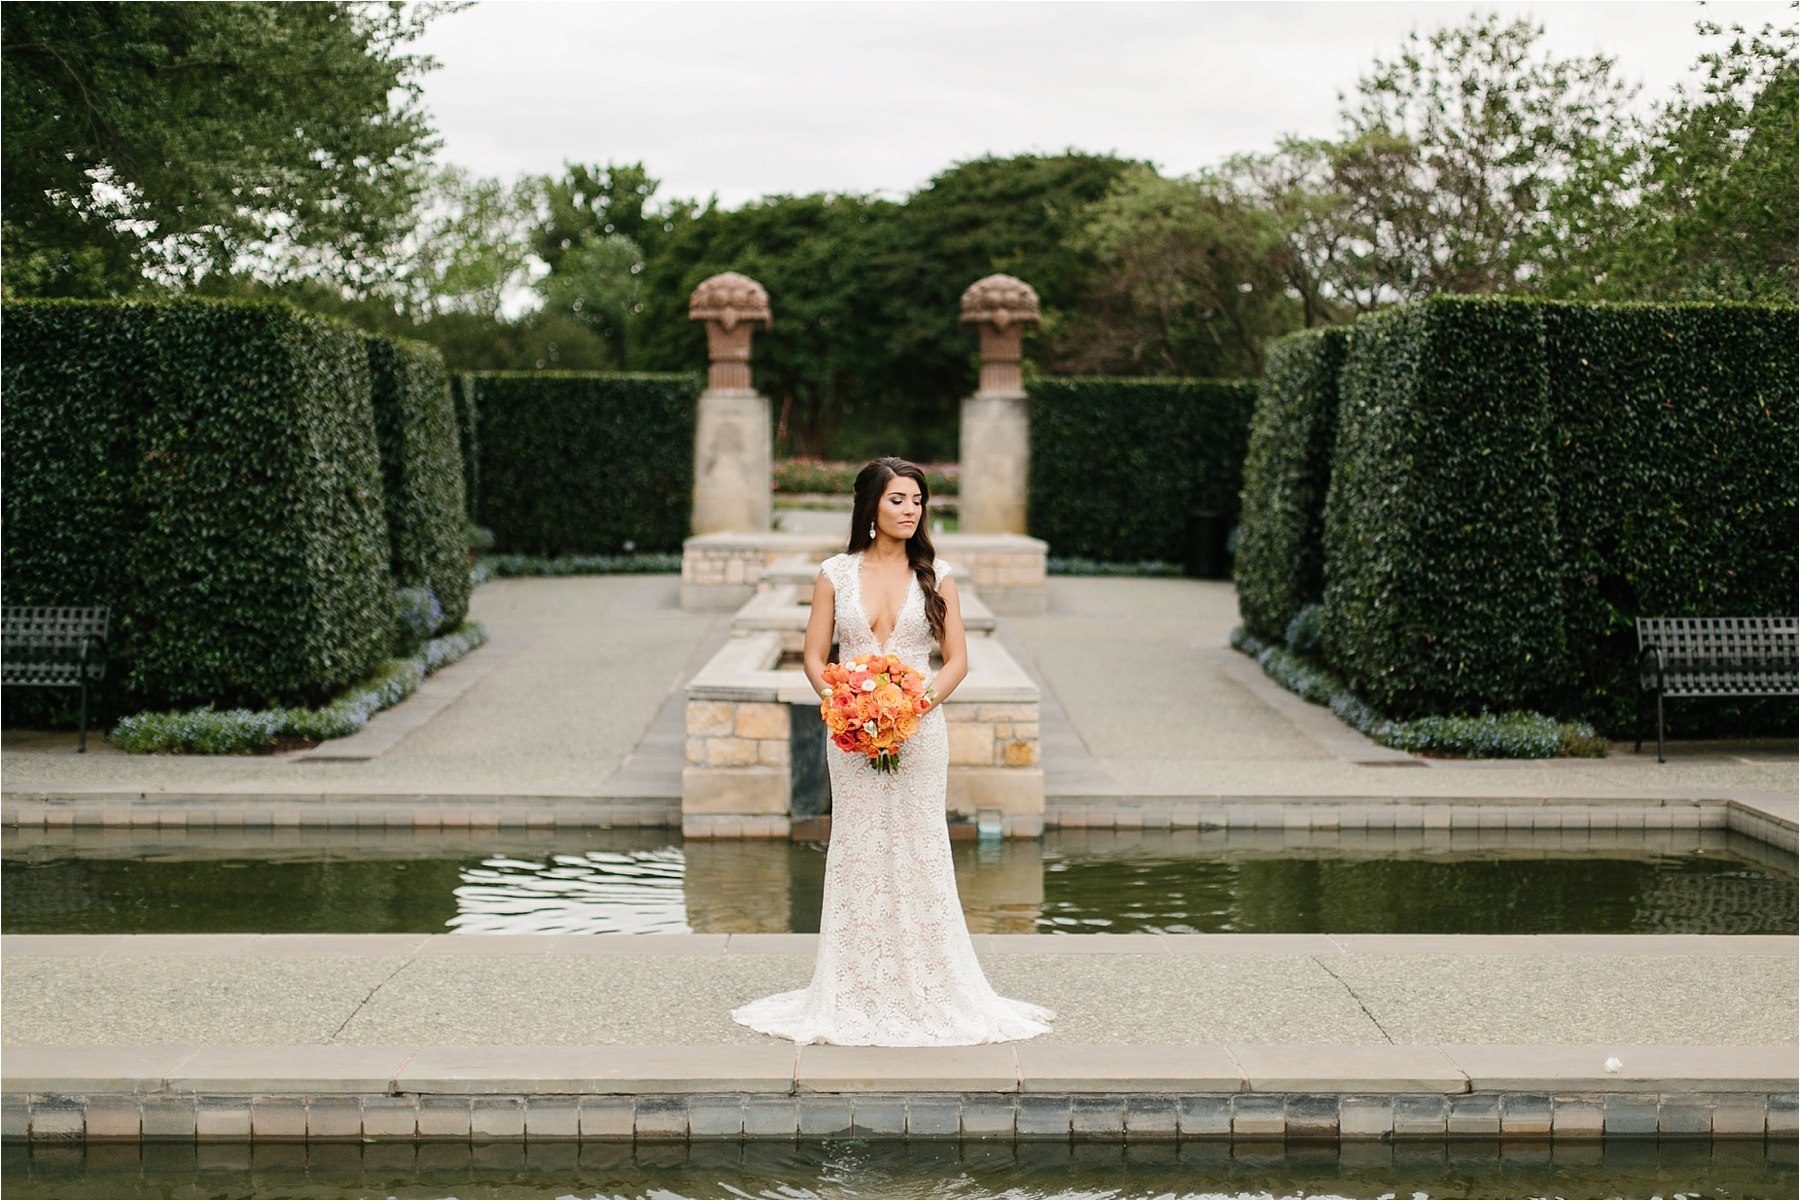 Devyn + Caden __ a Dallas Arboretum Garden Style Wedding by North Texas Wedding Photographer Rachel Meagan Photography __ 070